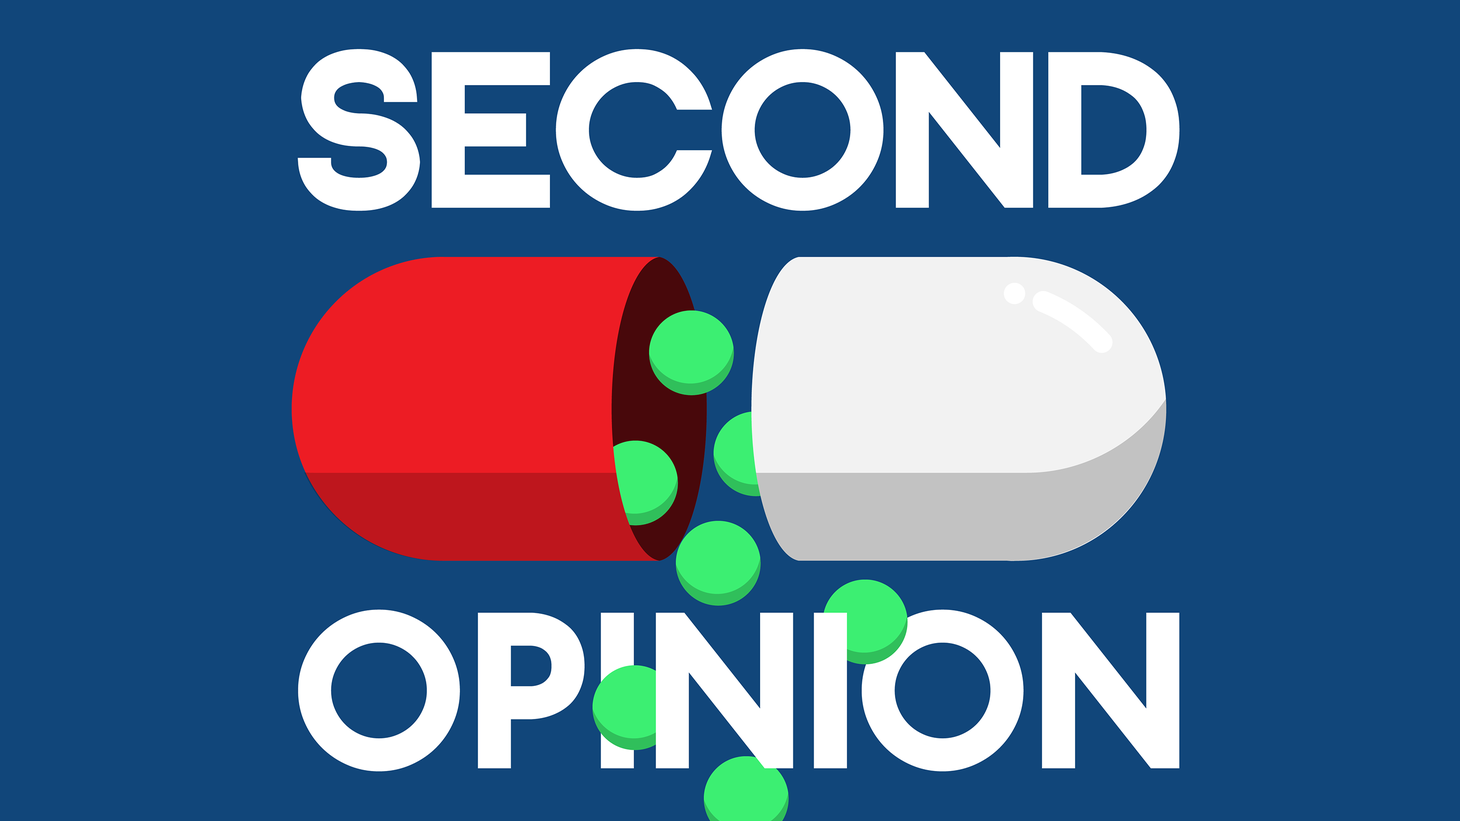 Social psychologists and economists are working from all sides to figure out how to change doctors' prescribing behaviors, but it is not always about what's best for patients.